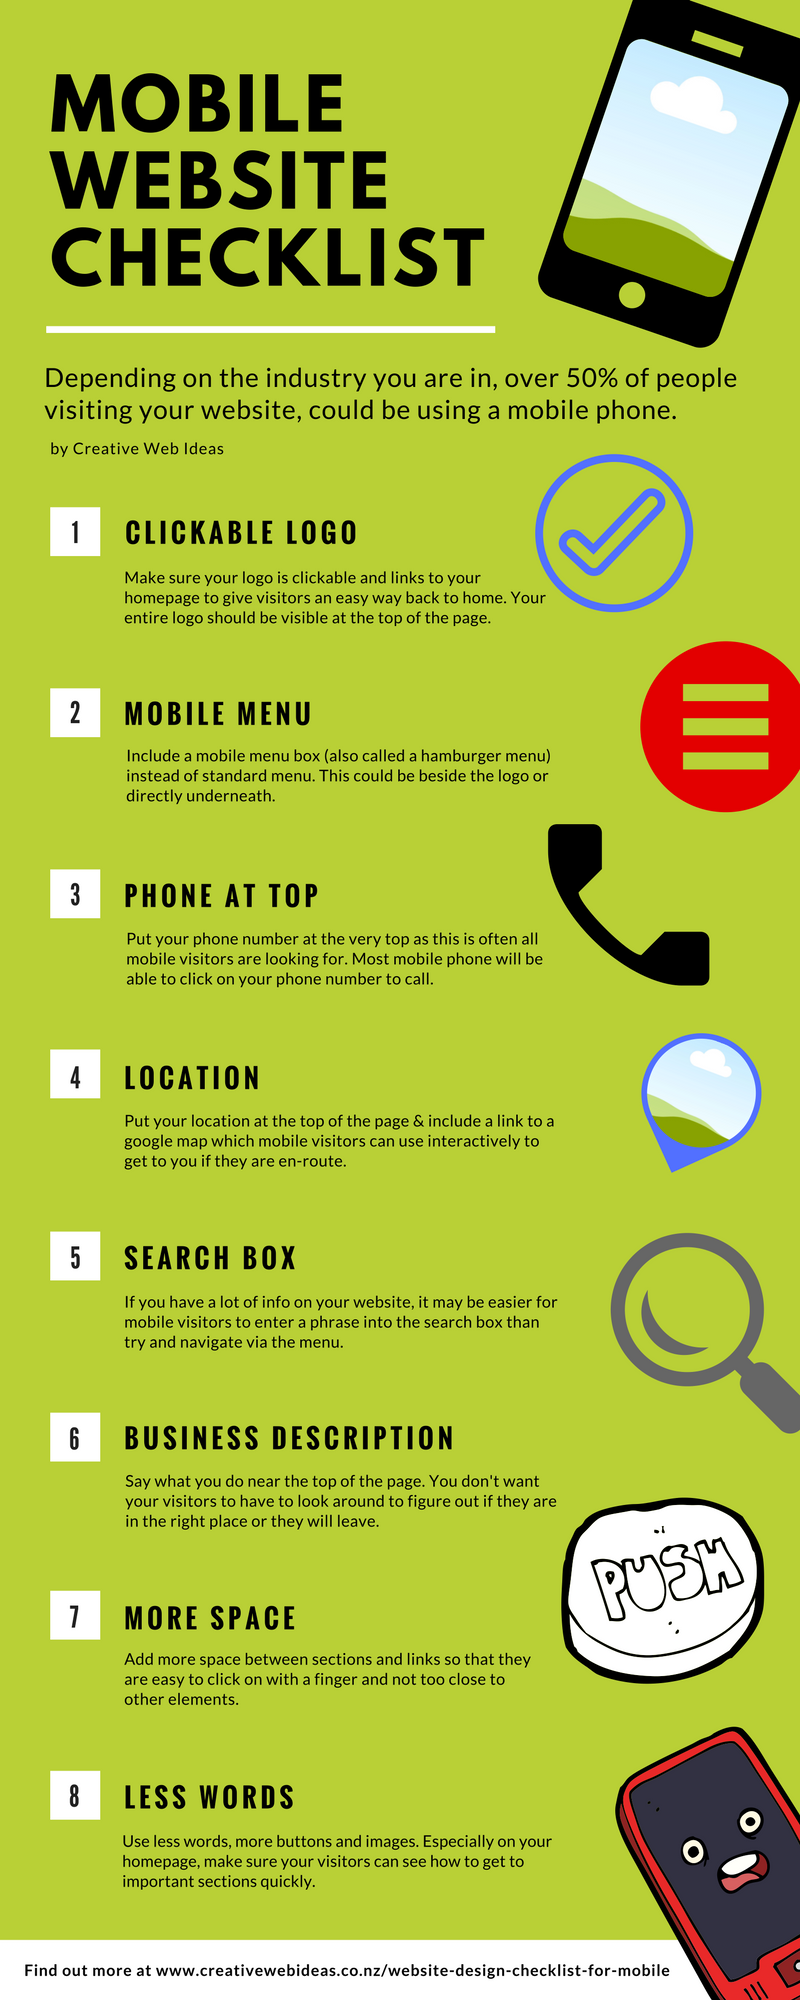 mobile website design checklist